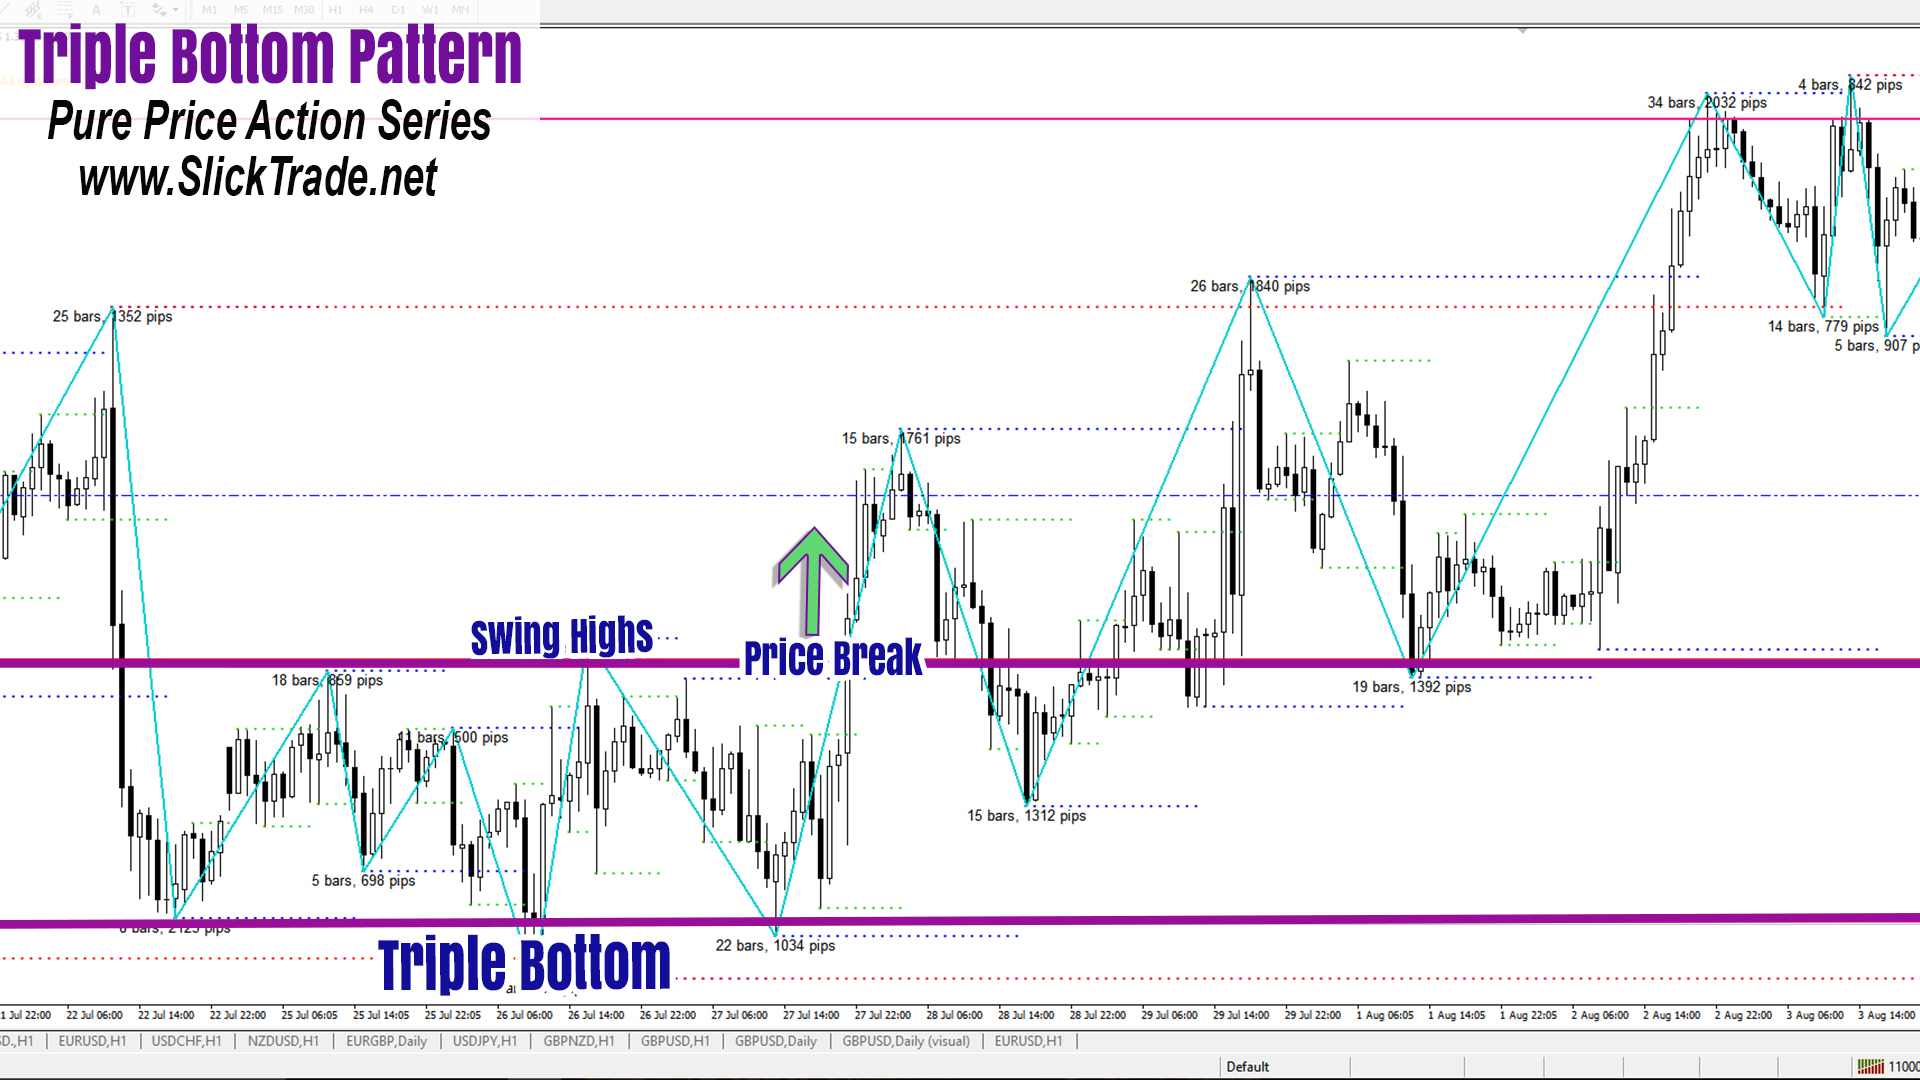 Forex trading price action patterns